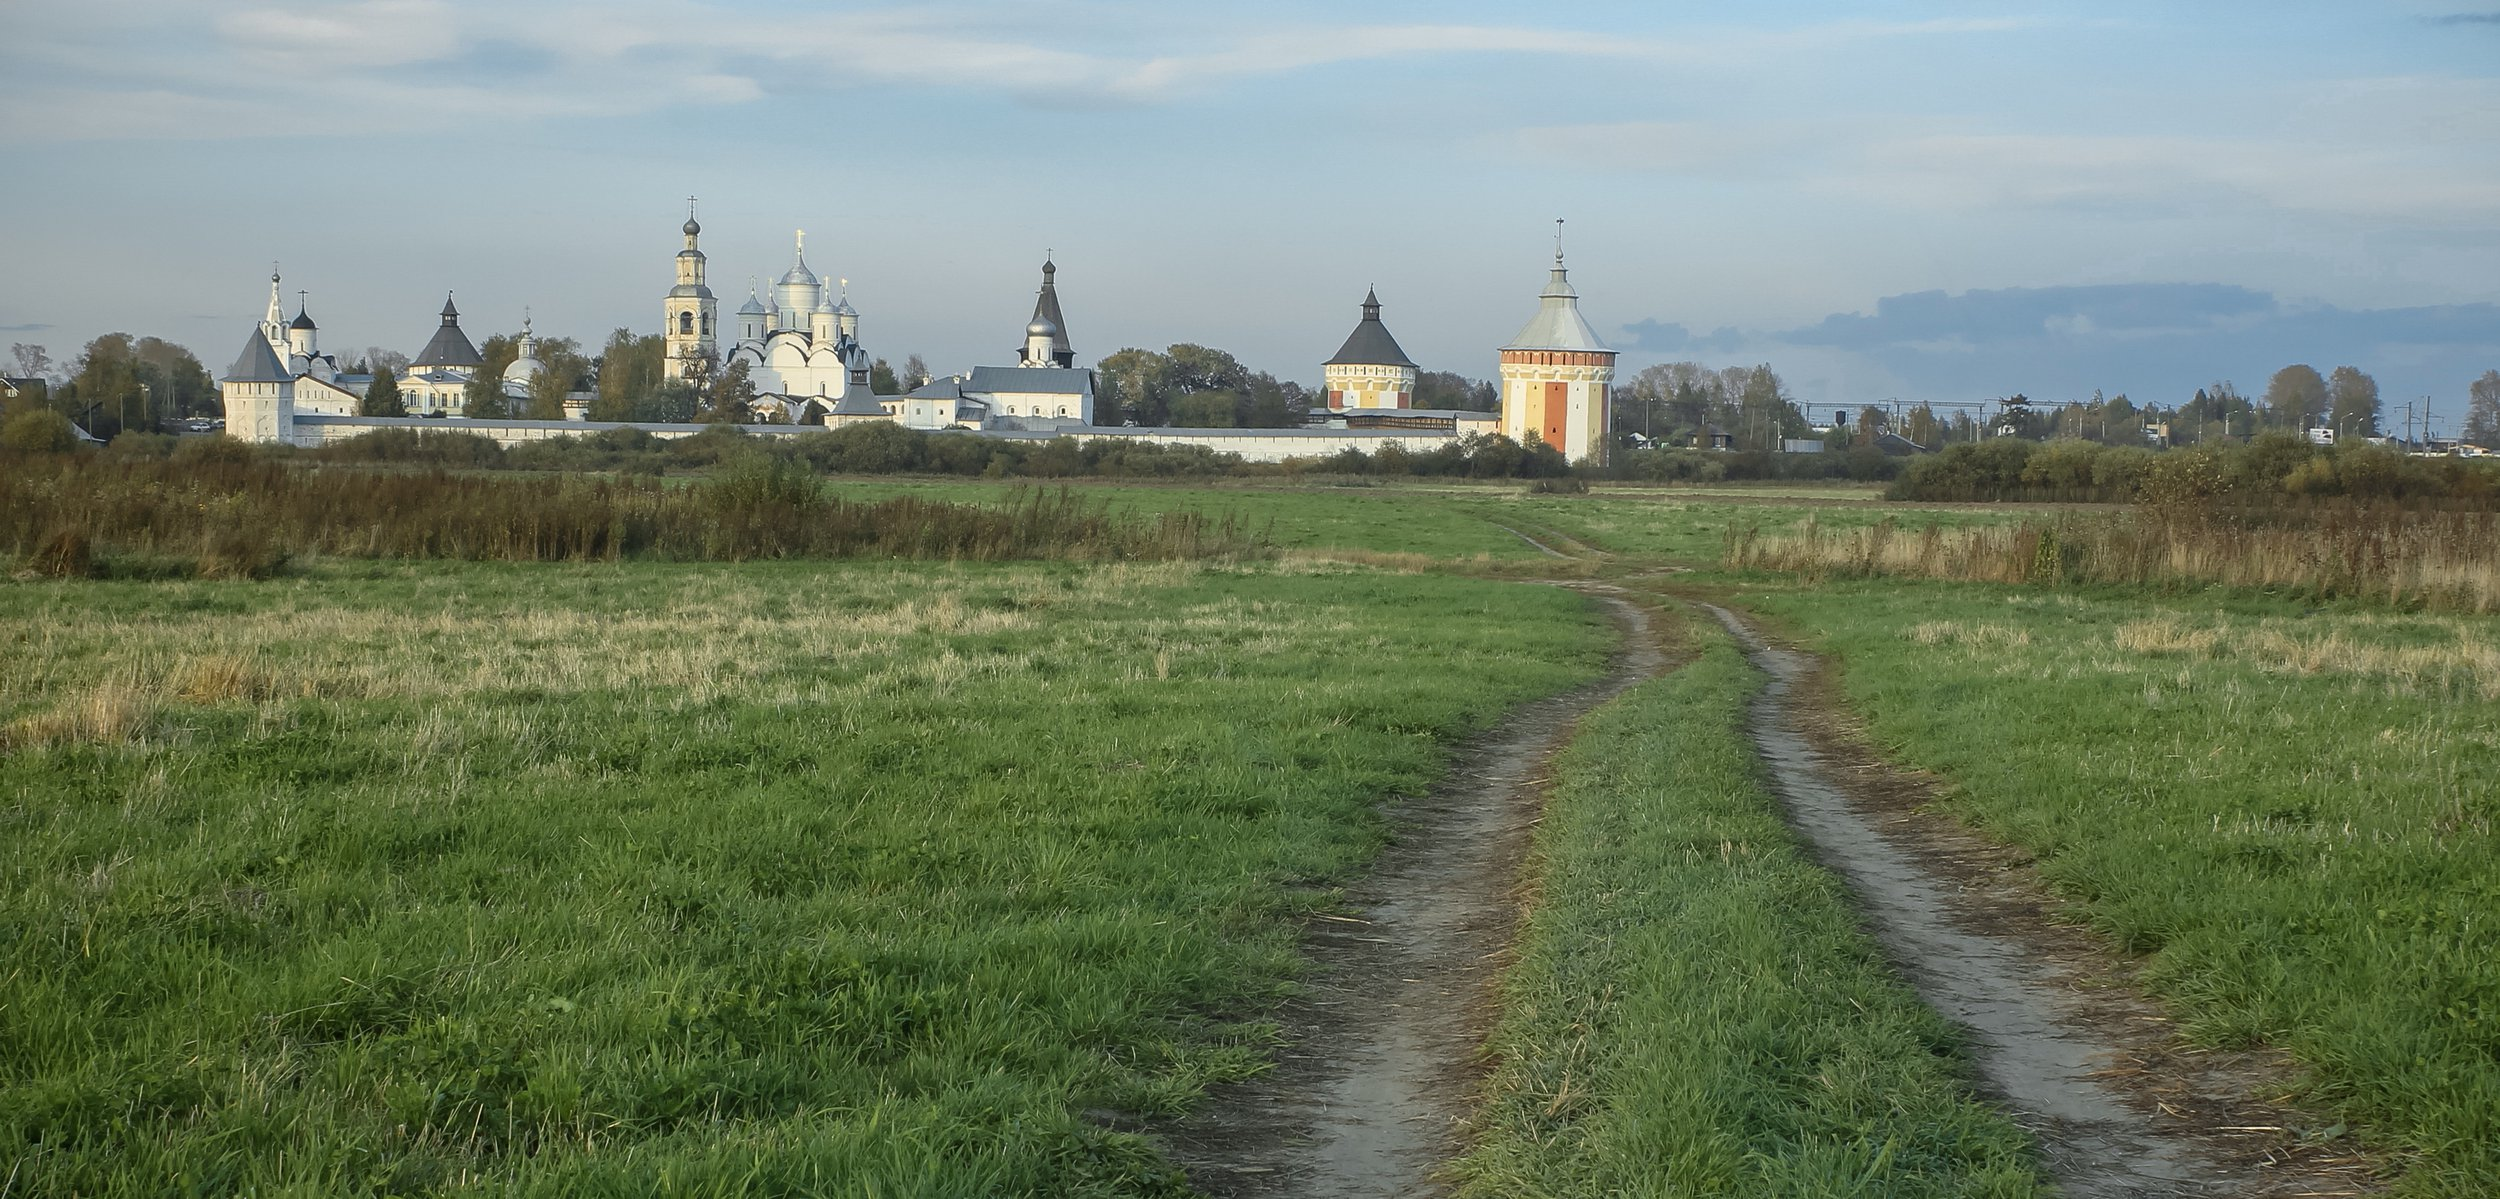 Прилуцкий монастырь и колея в поле / Prilutsky Monastery and rut in the field